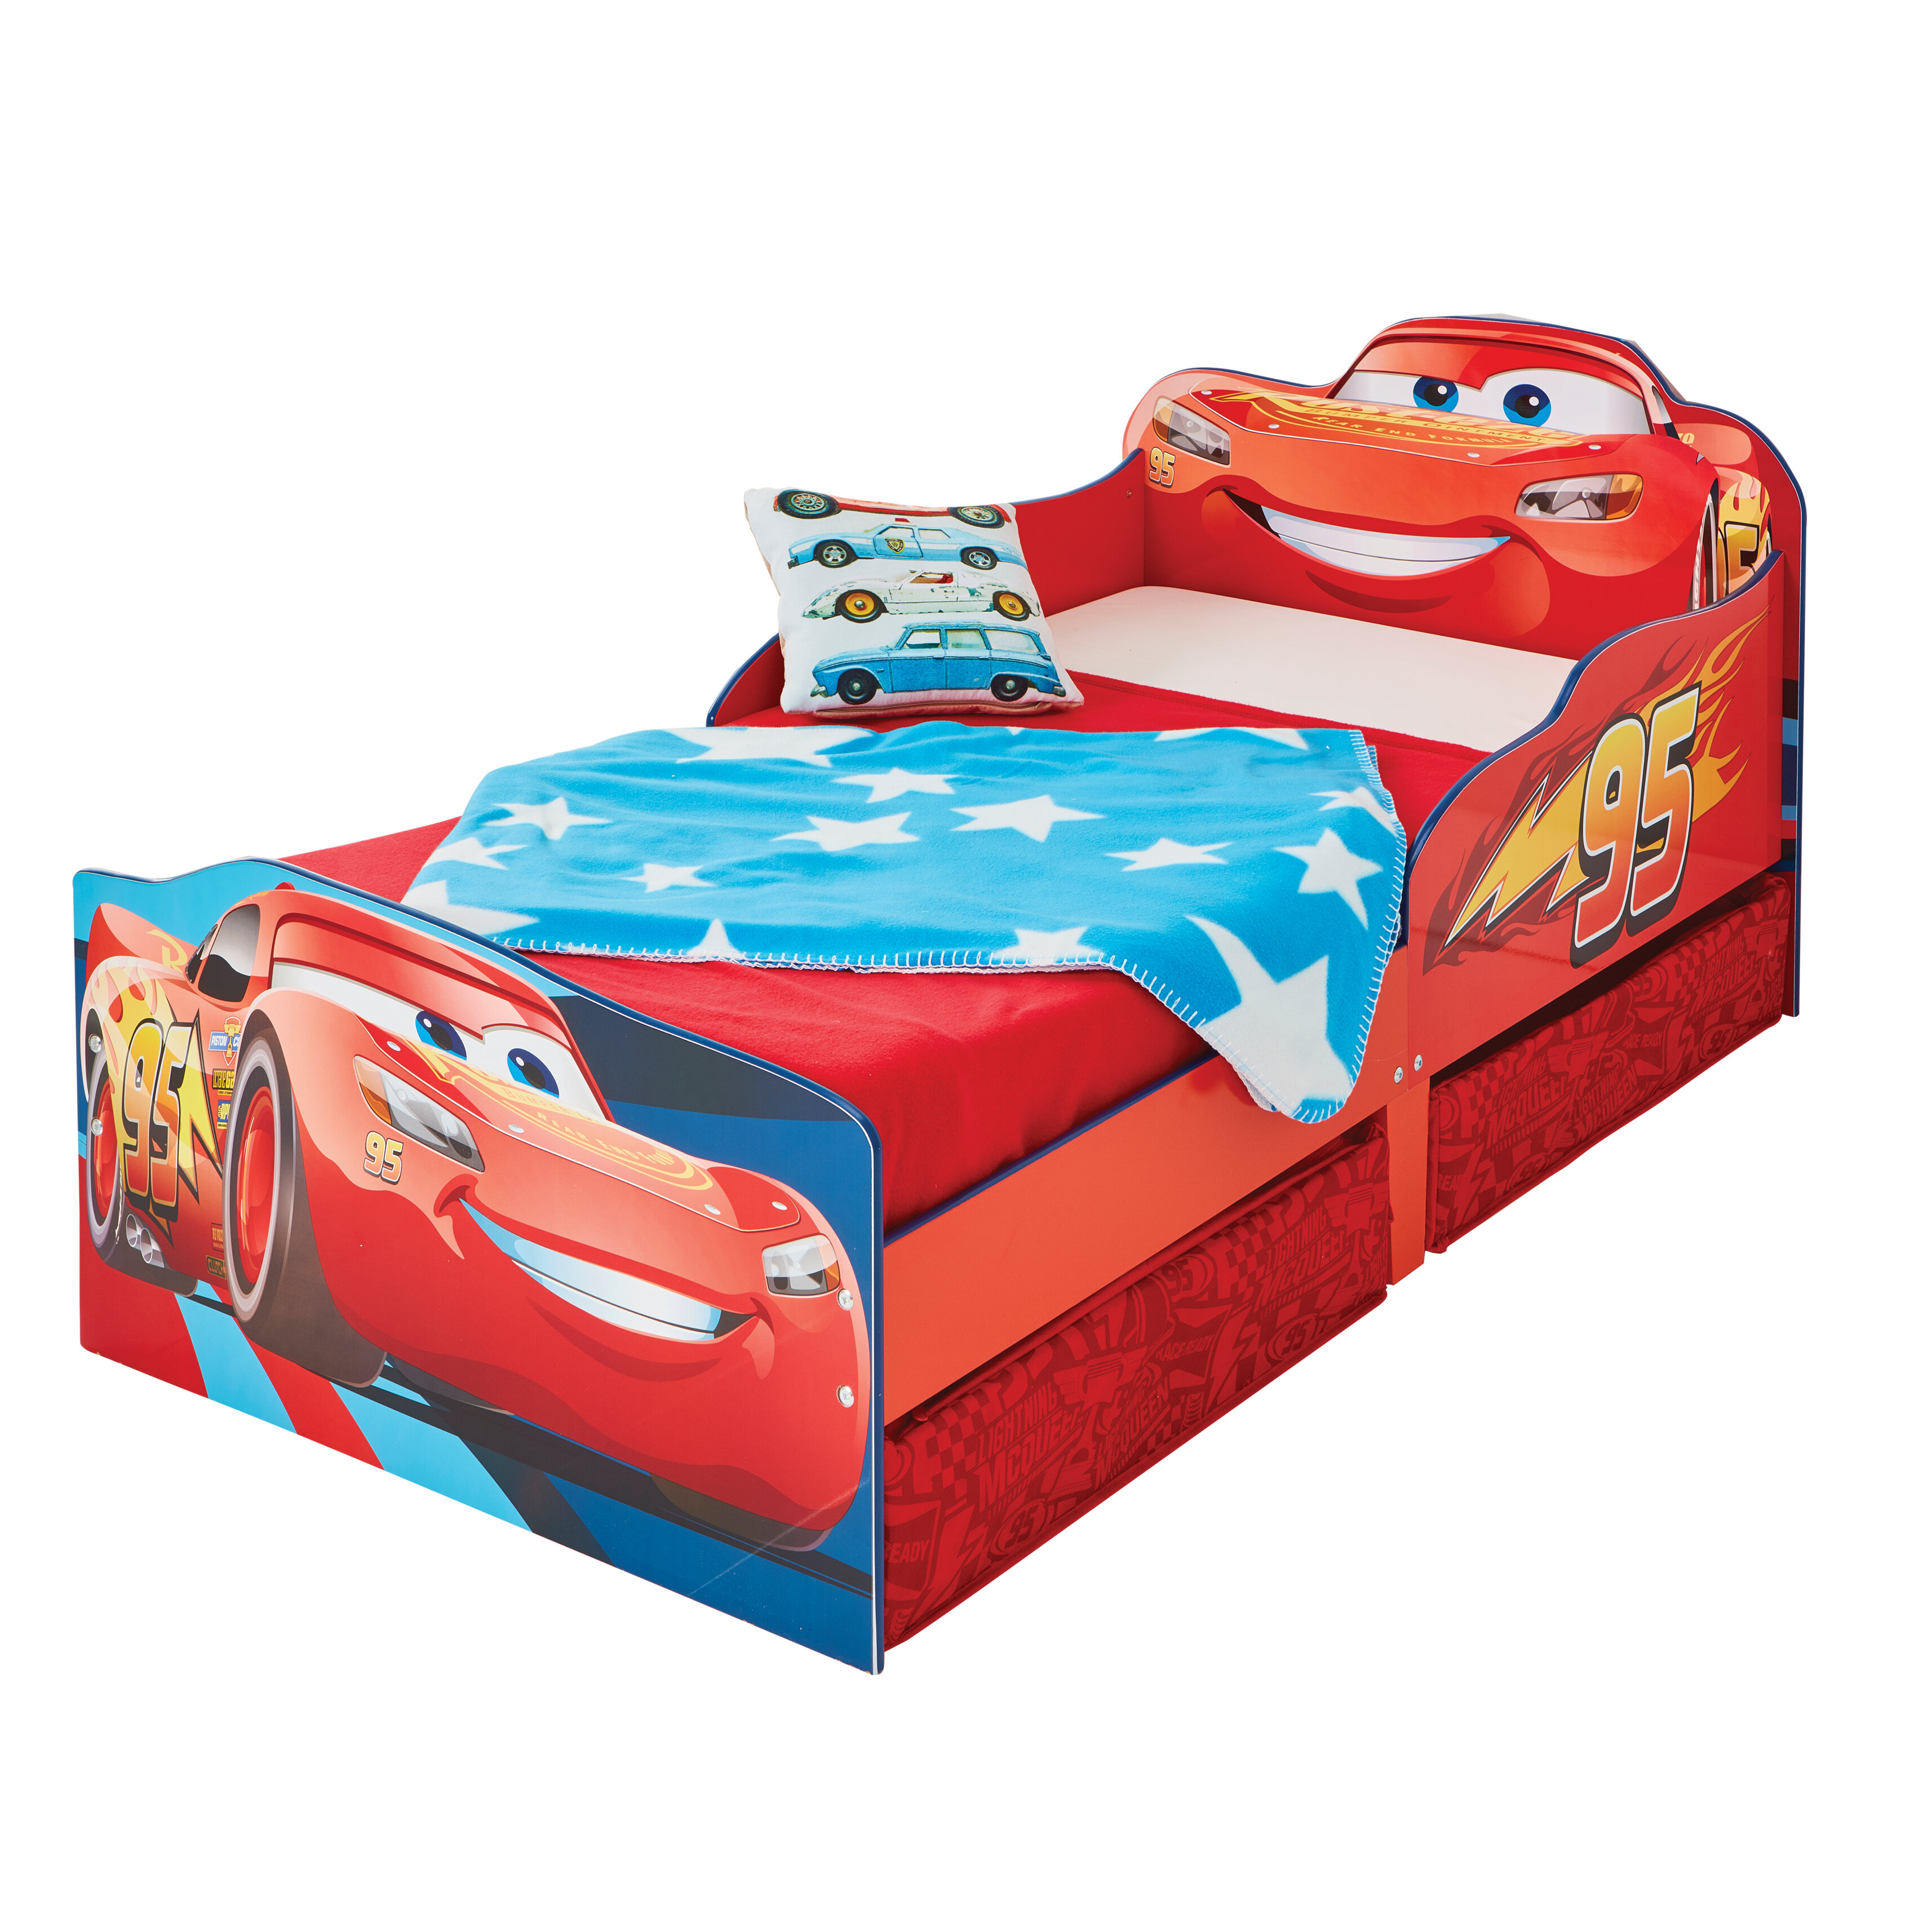 sale retailer 2e60c 8b5d0 Disney Lightning McQueen Toddler Bed with Storage Drawers